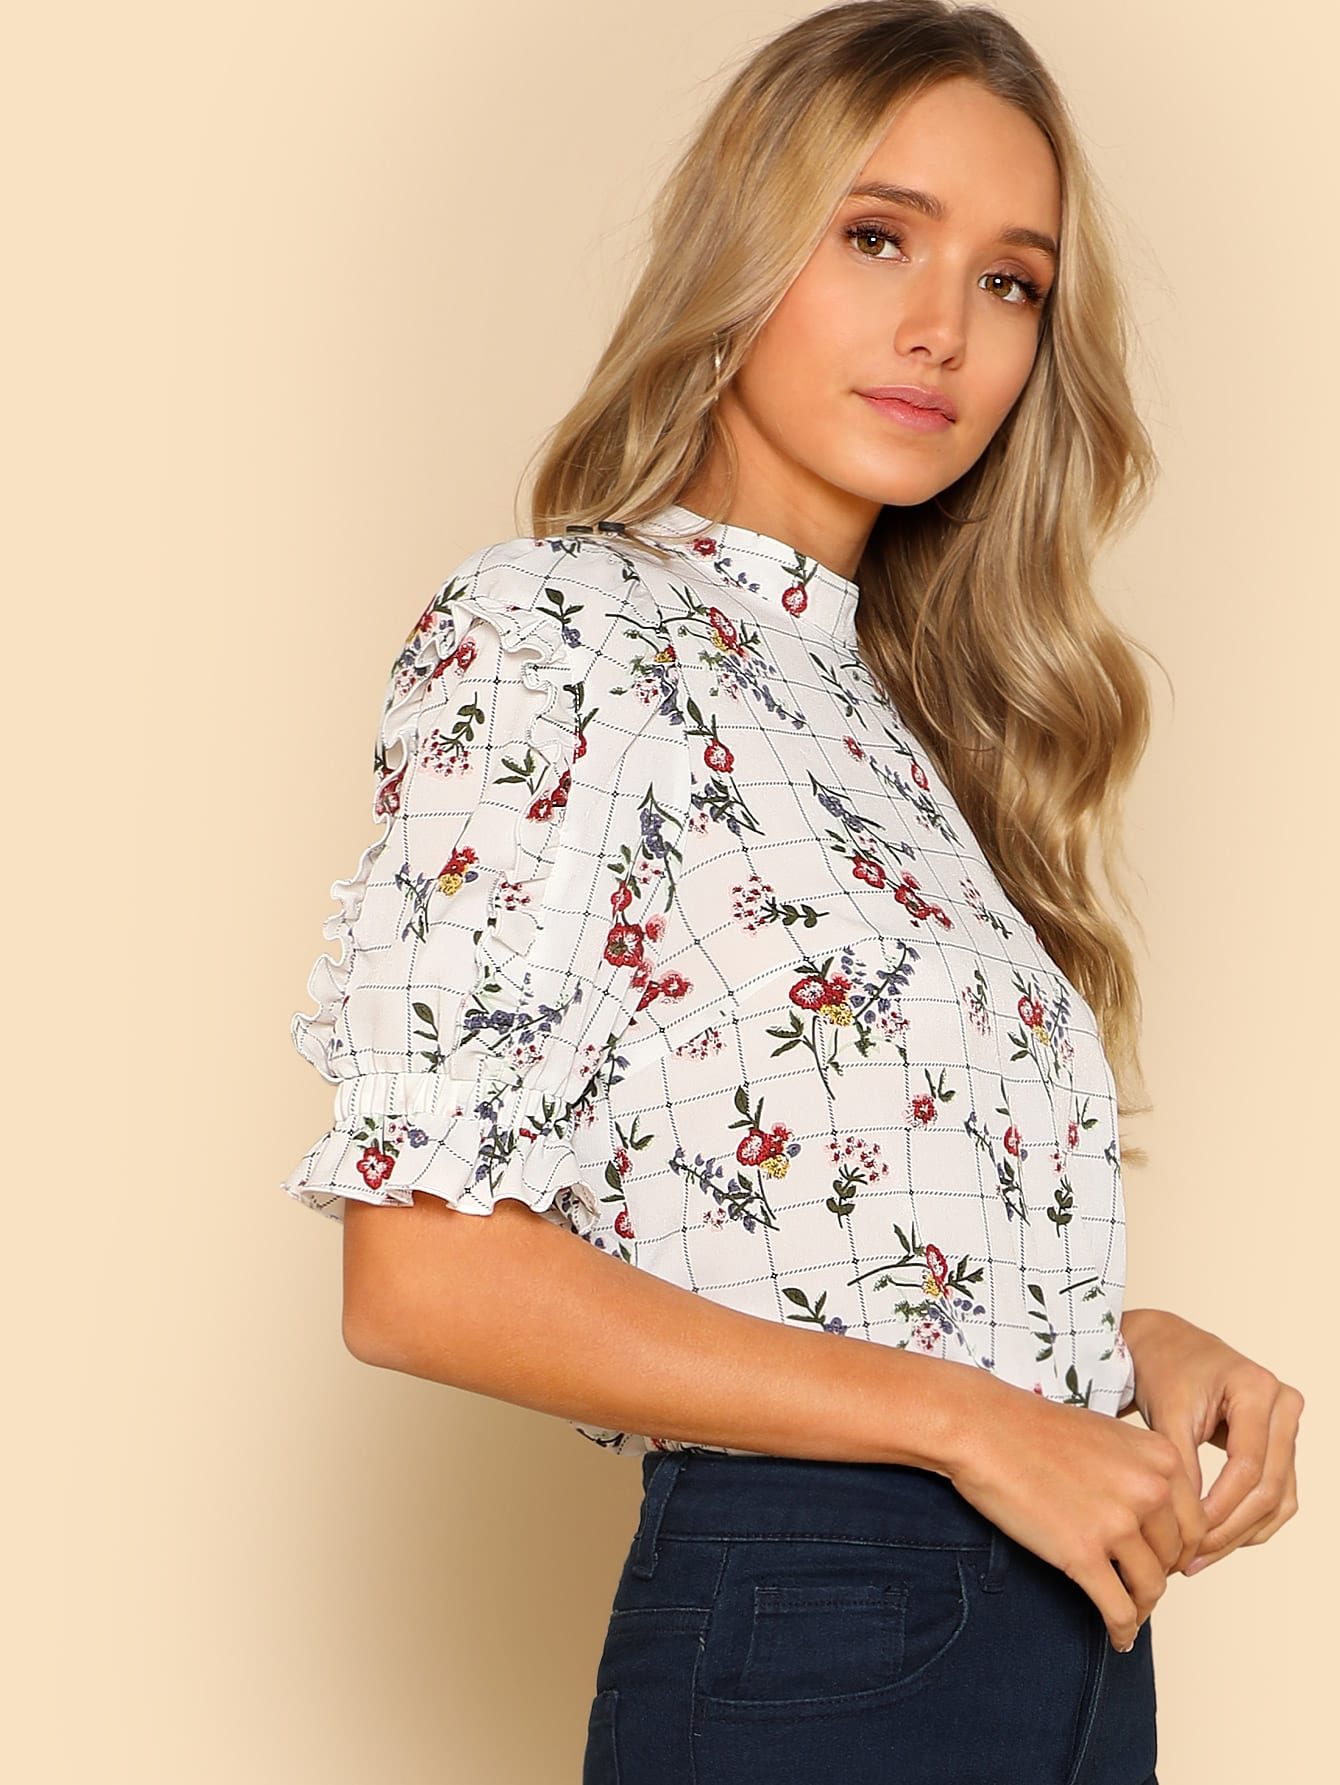 Frill Detail Mixed Print Top frill detail crochet insert embroidered mesh top